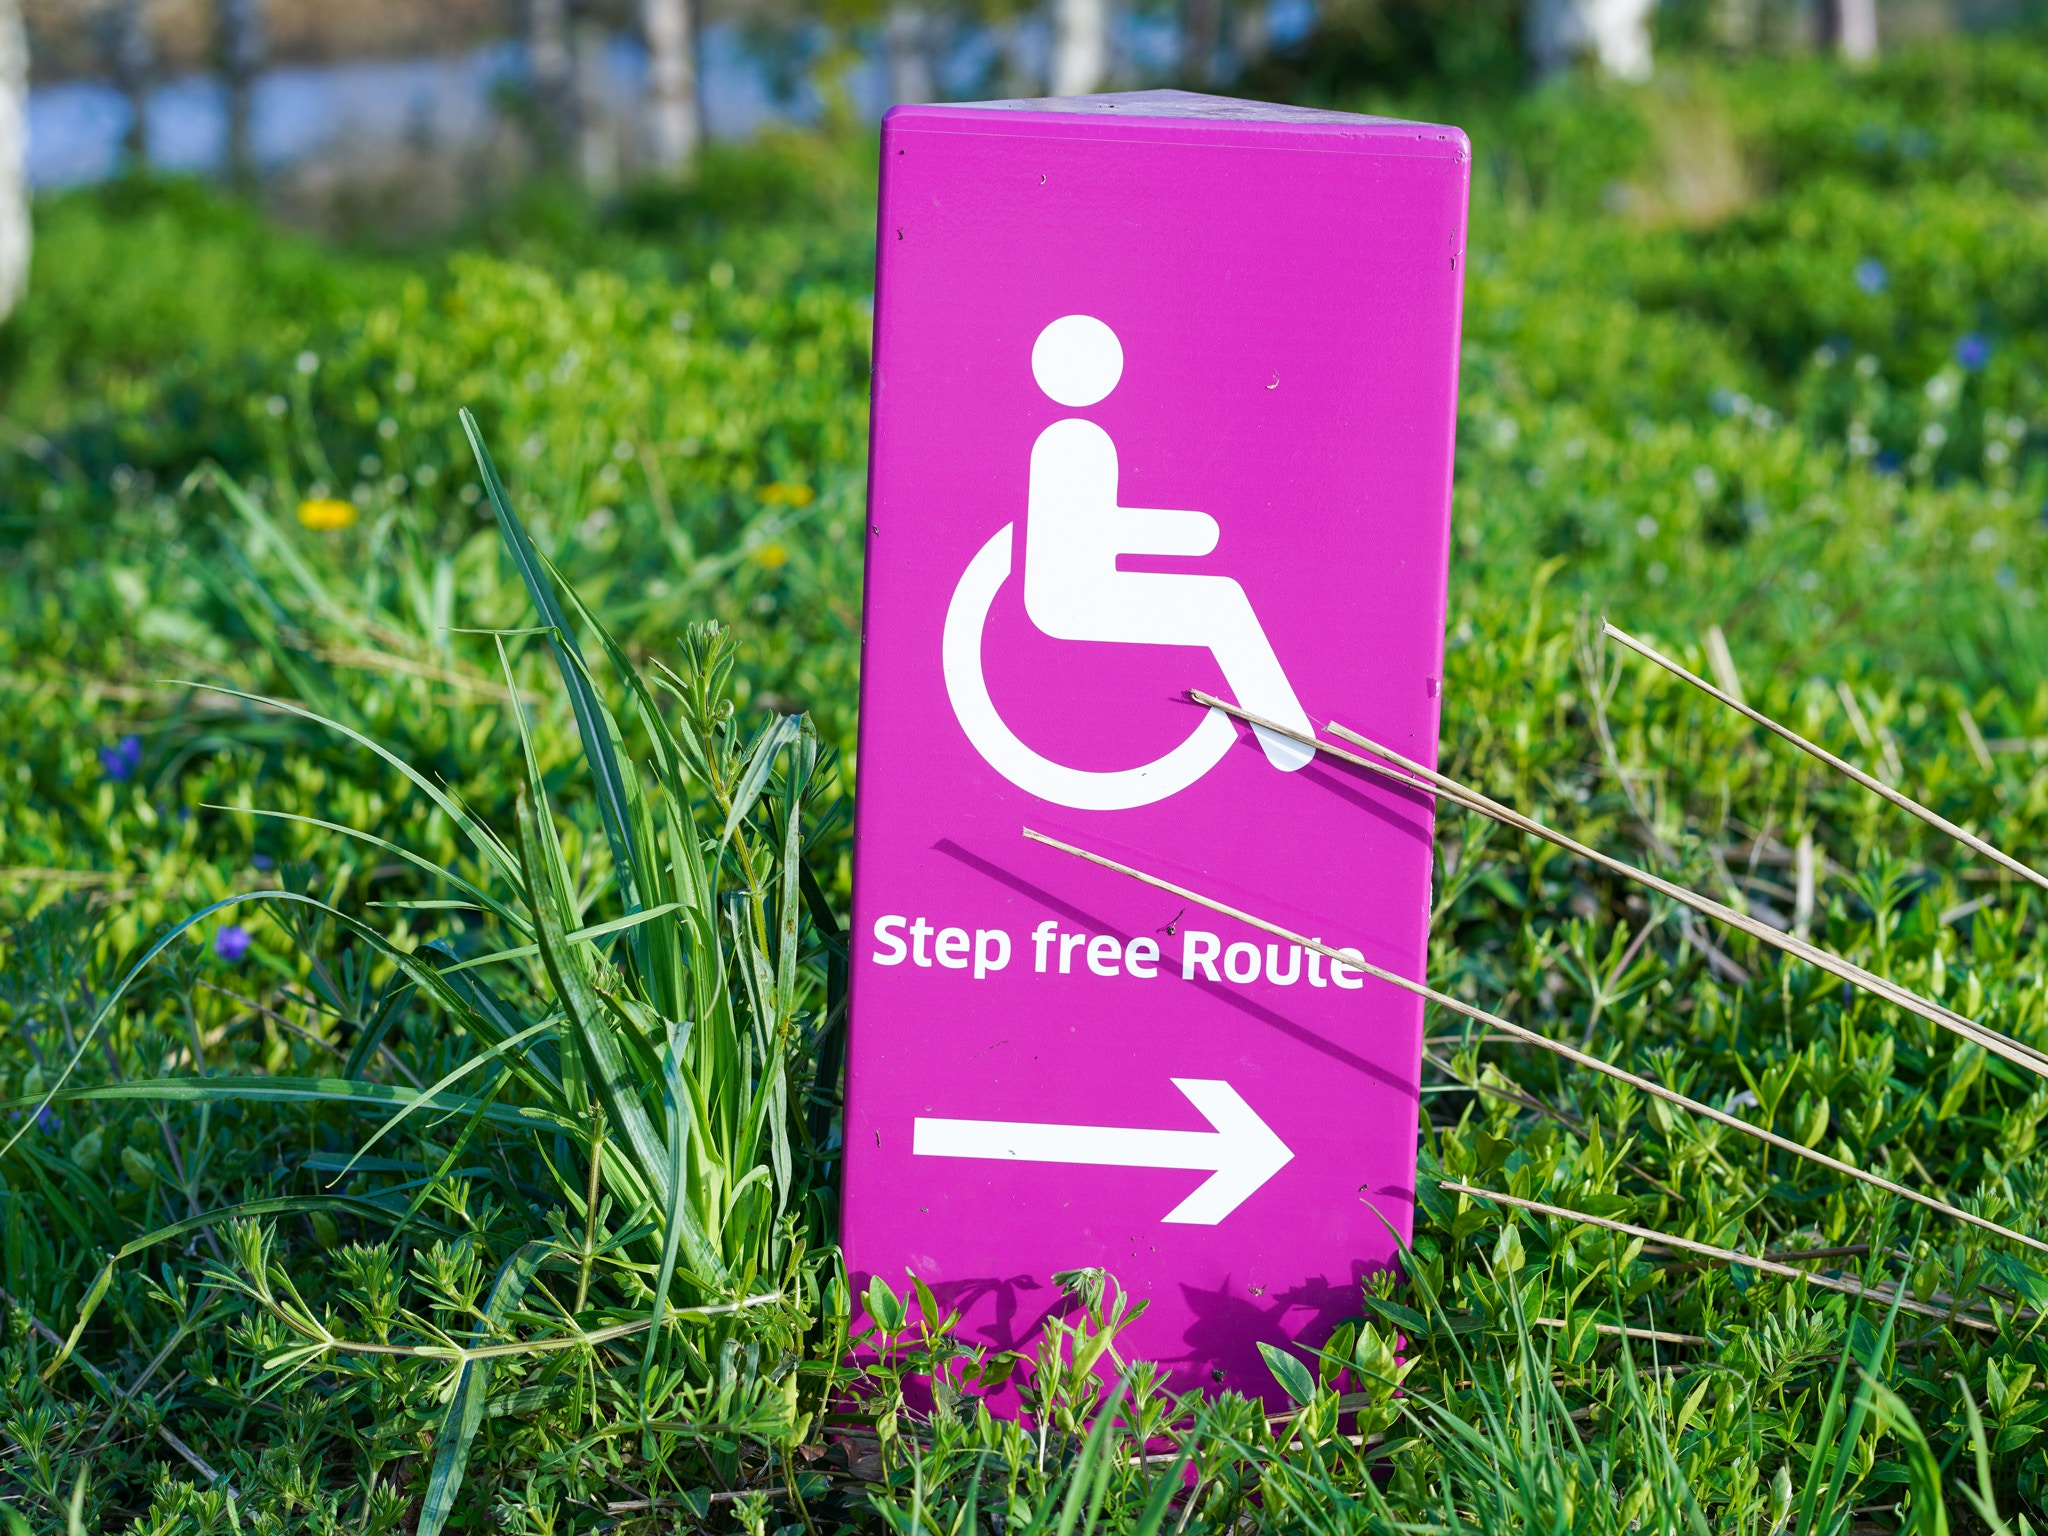 Image of a sign indicating a step free path